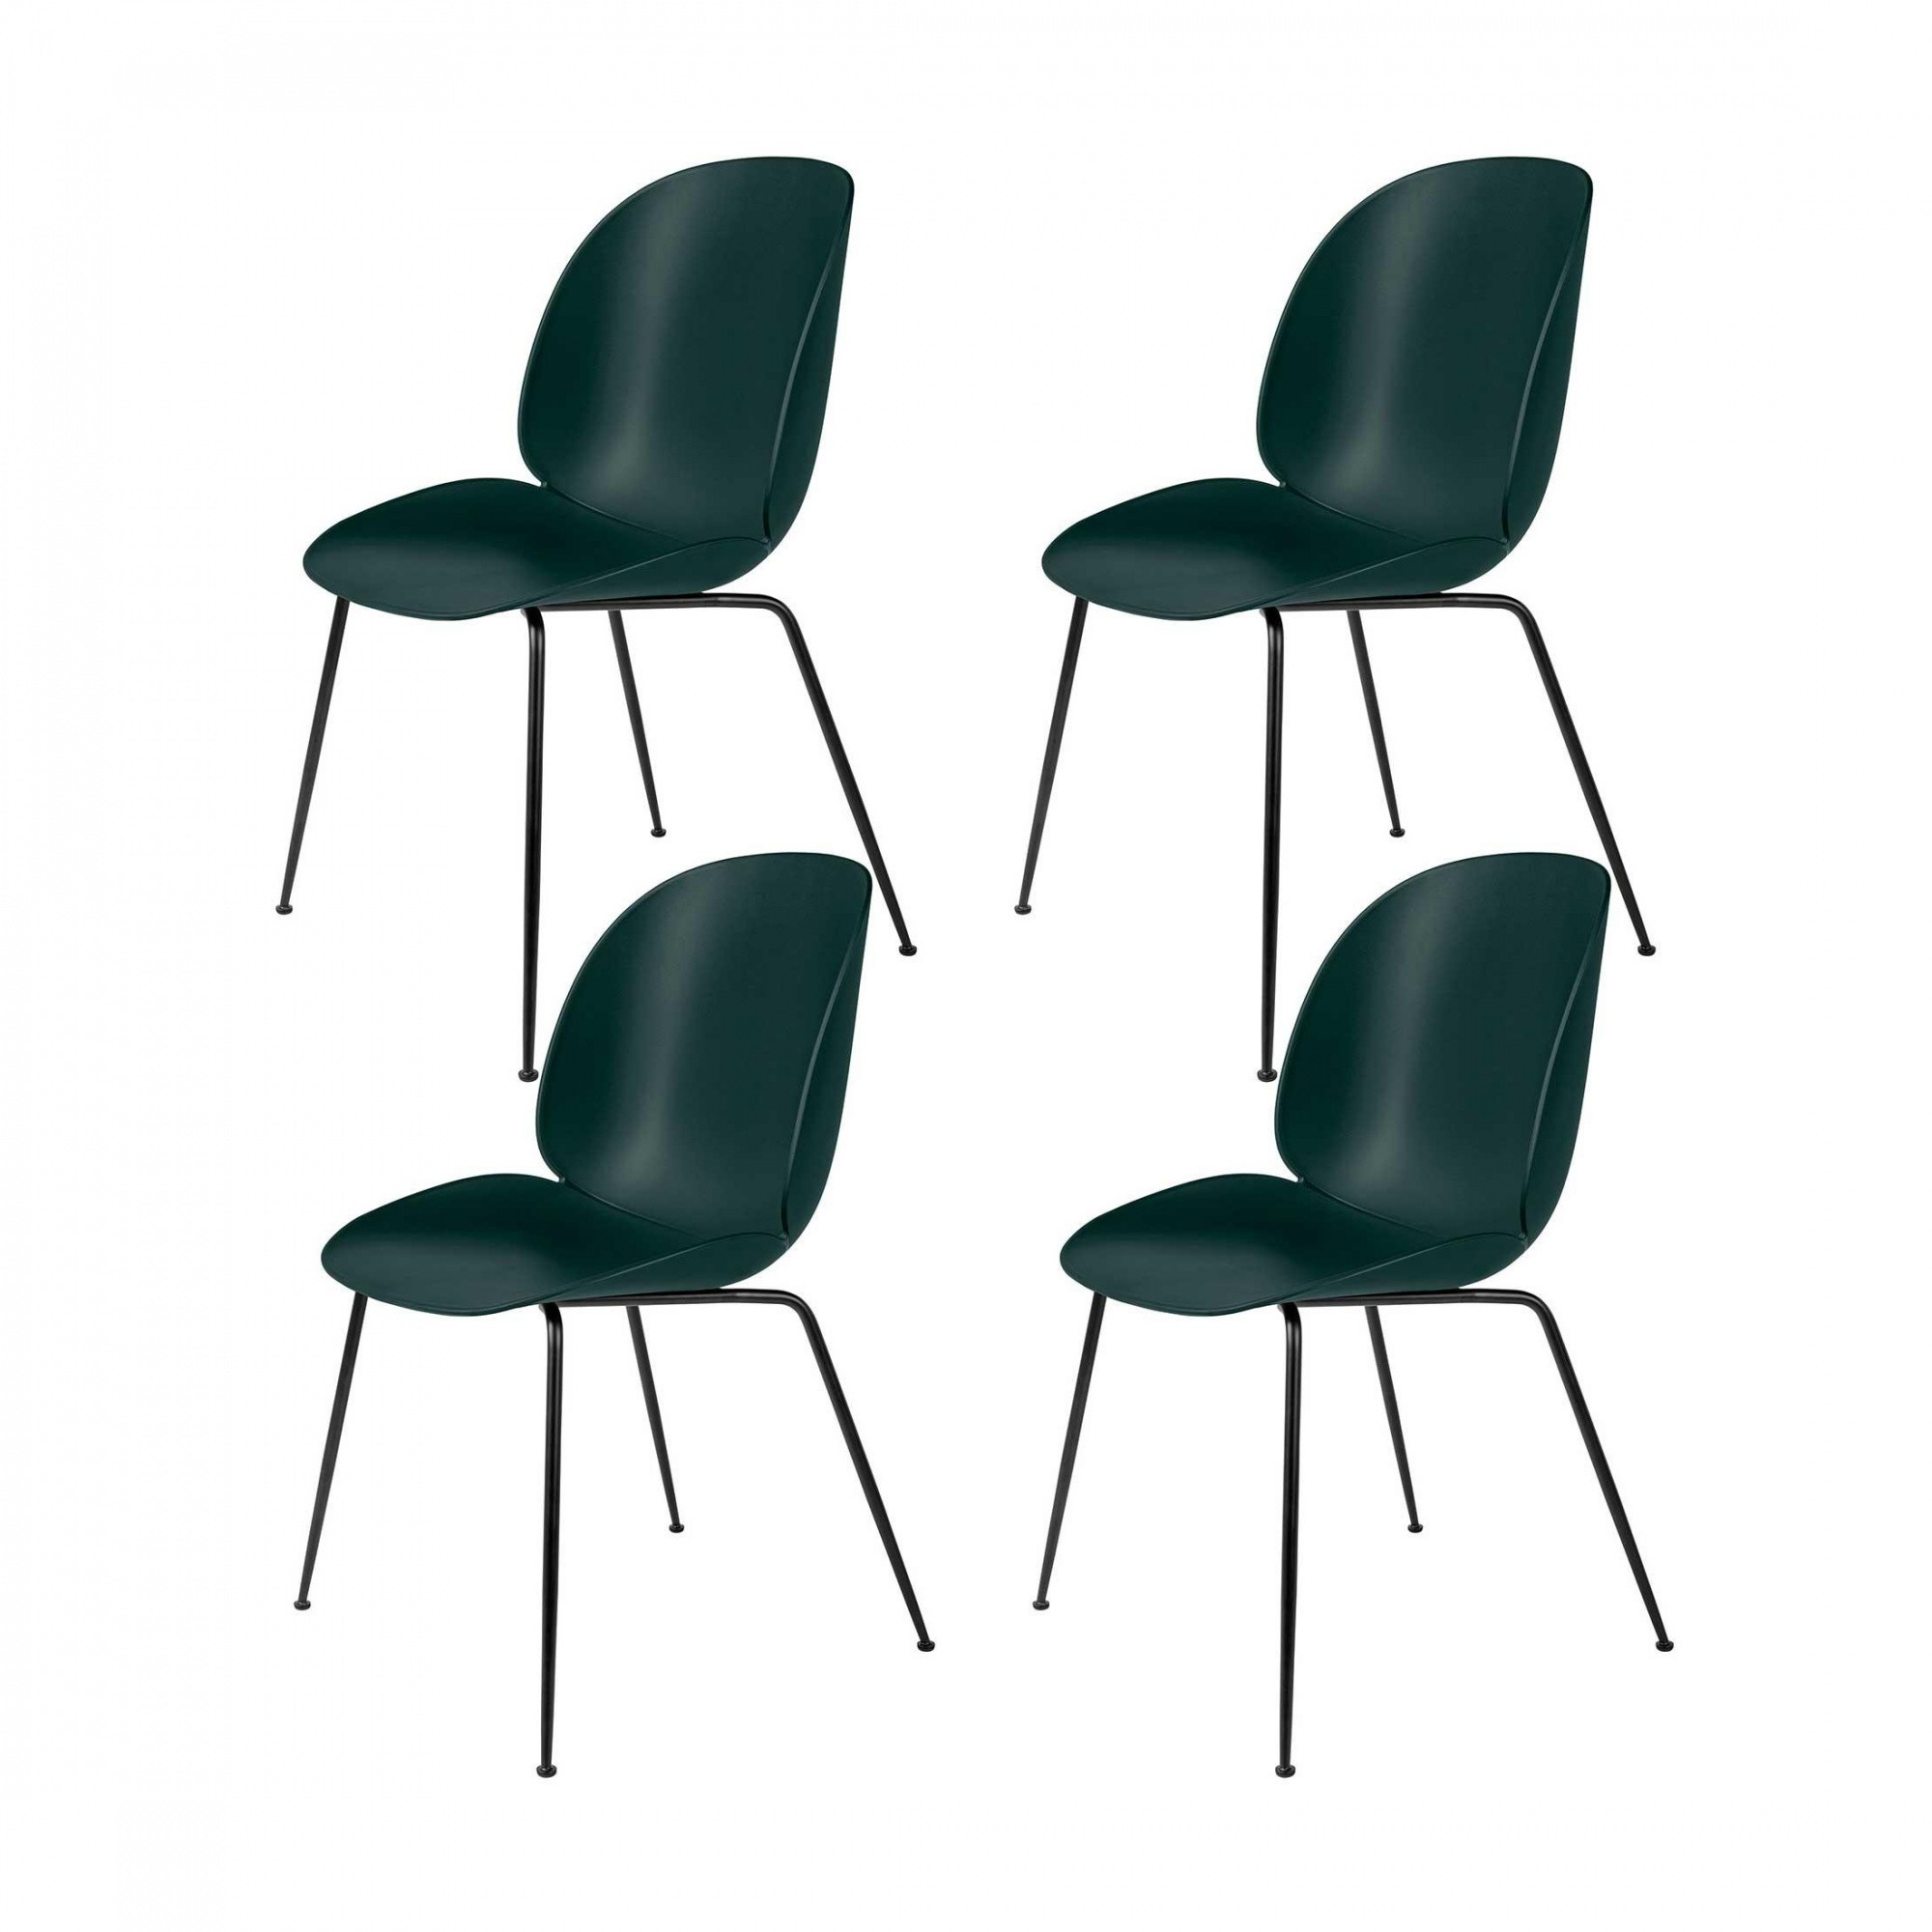 Gubi   Beetle Dining Chair Set Of 4   Green/seat Polypropylene Plastic ...